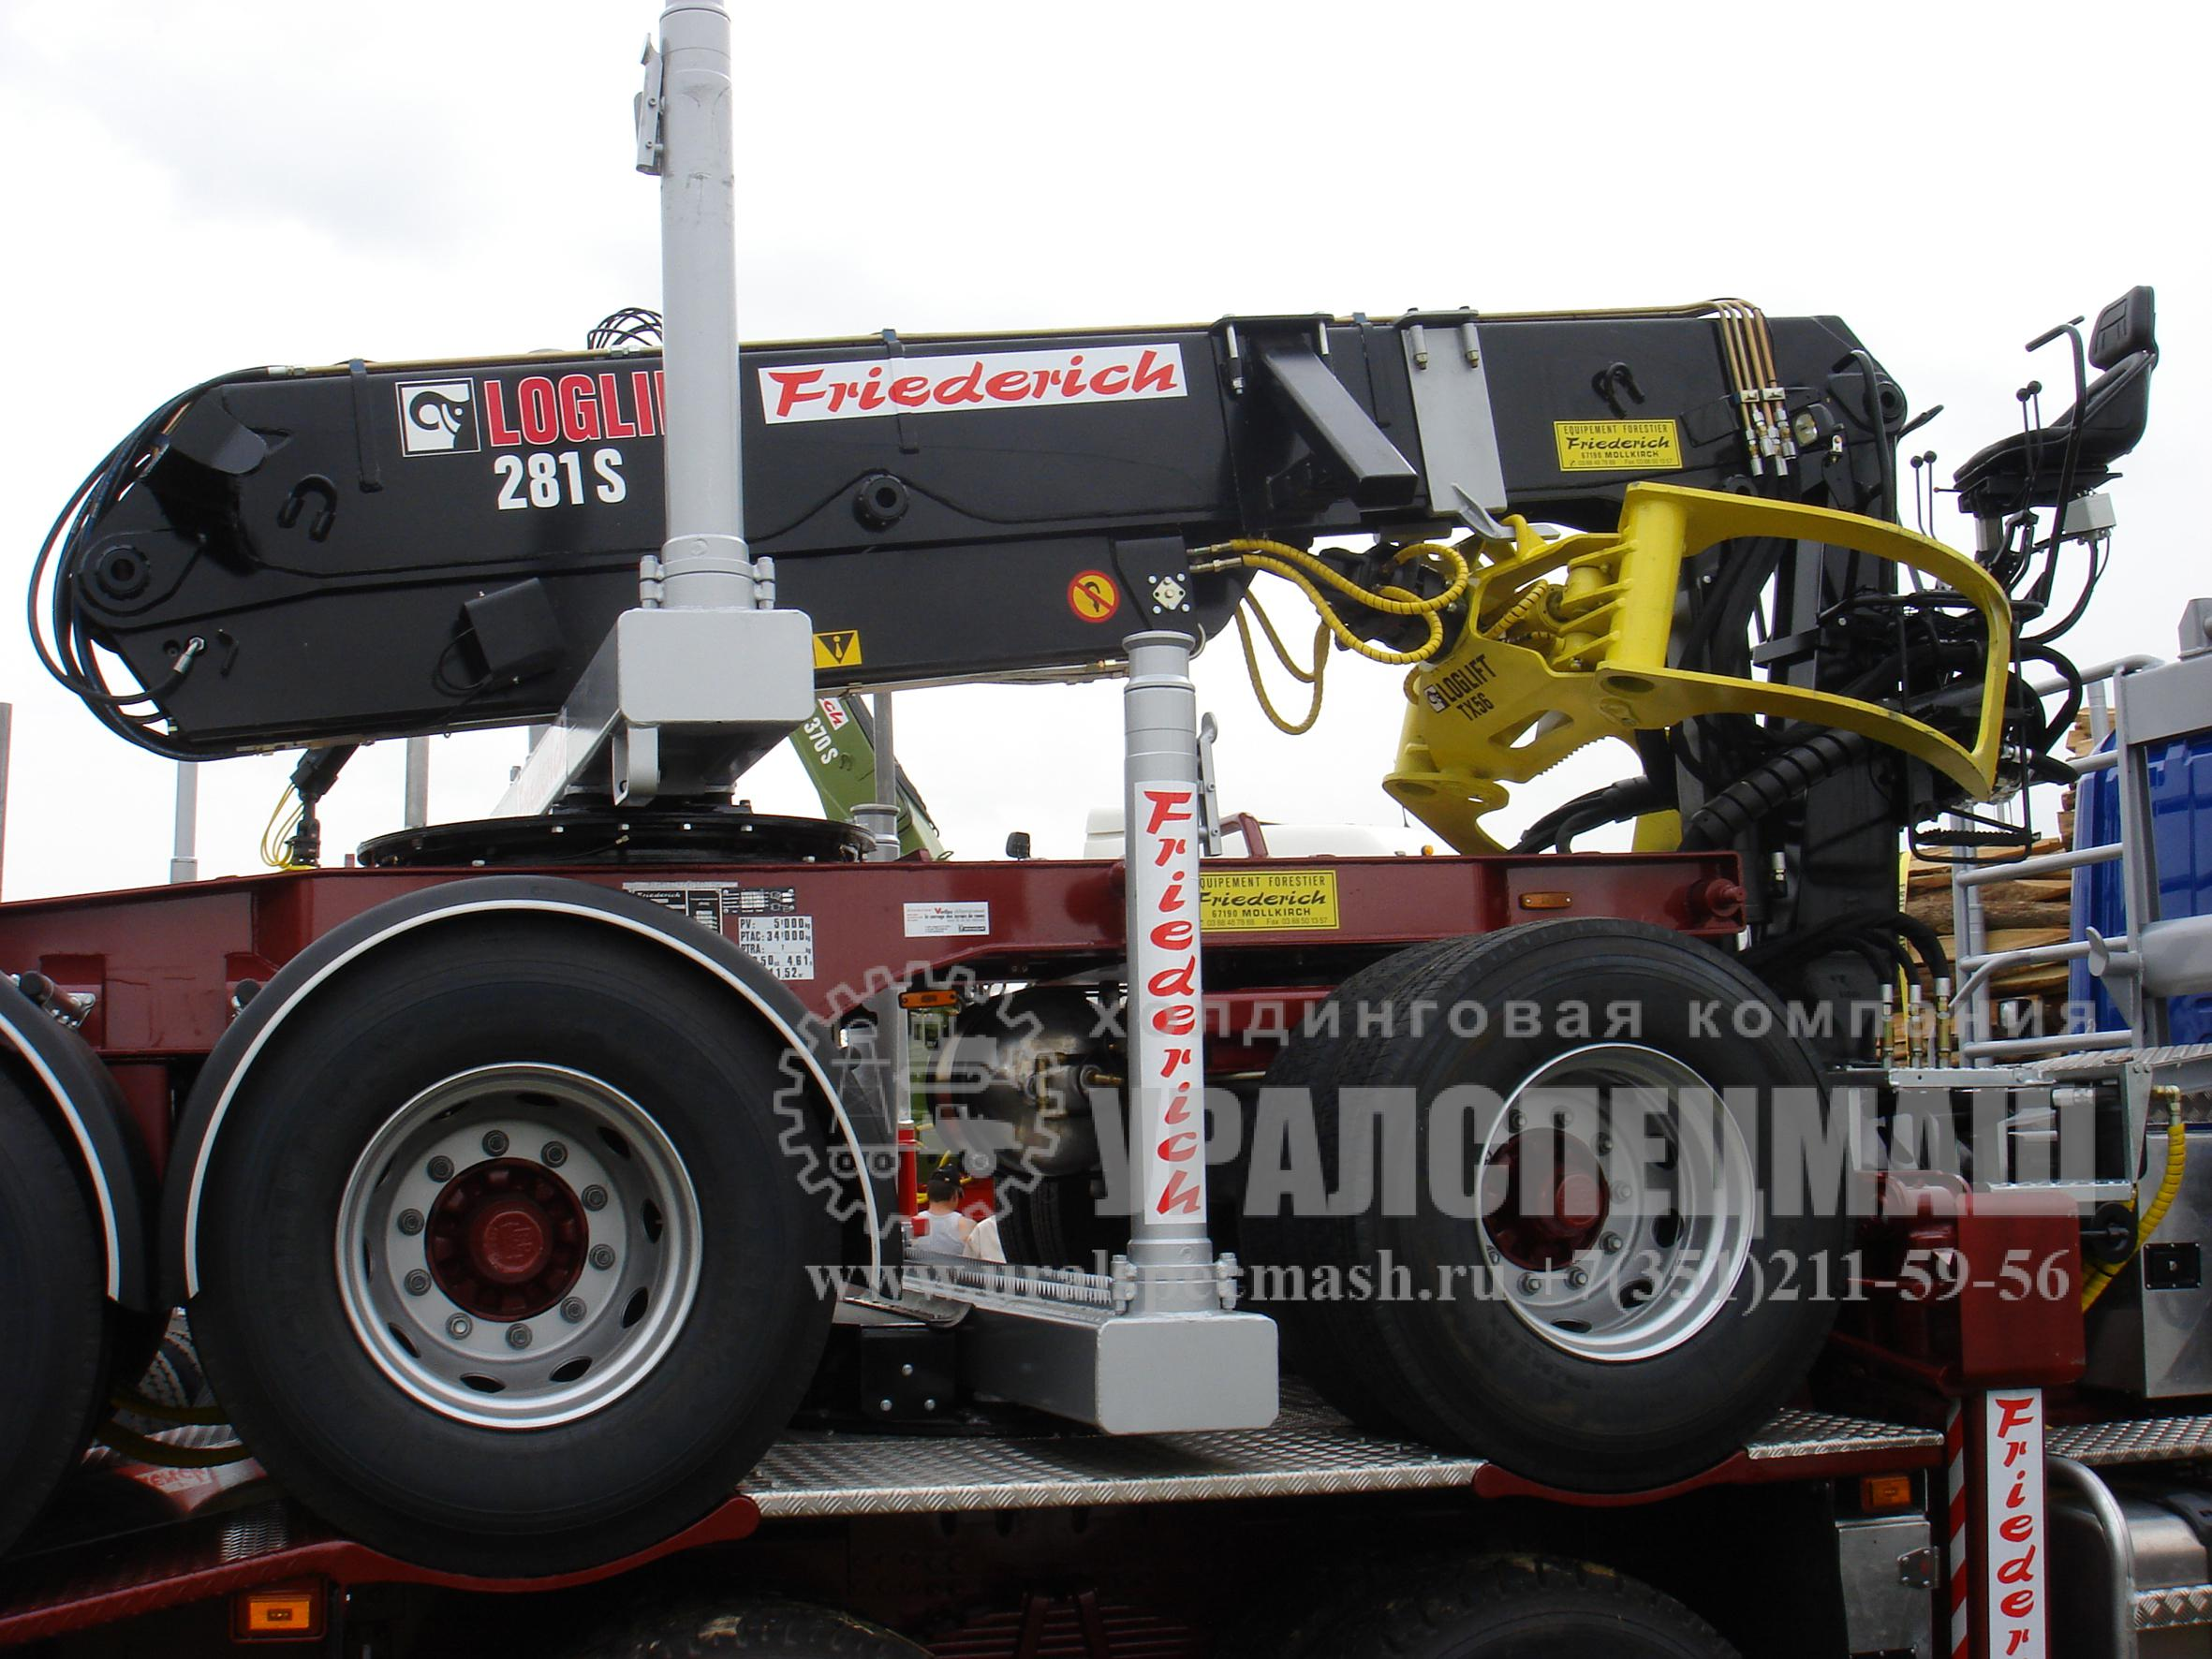 LOGLIFT F 281 S 83